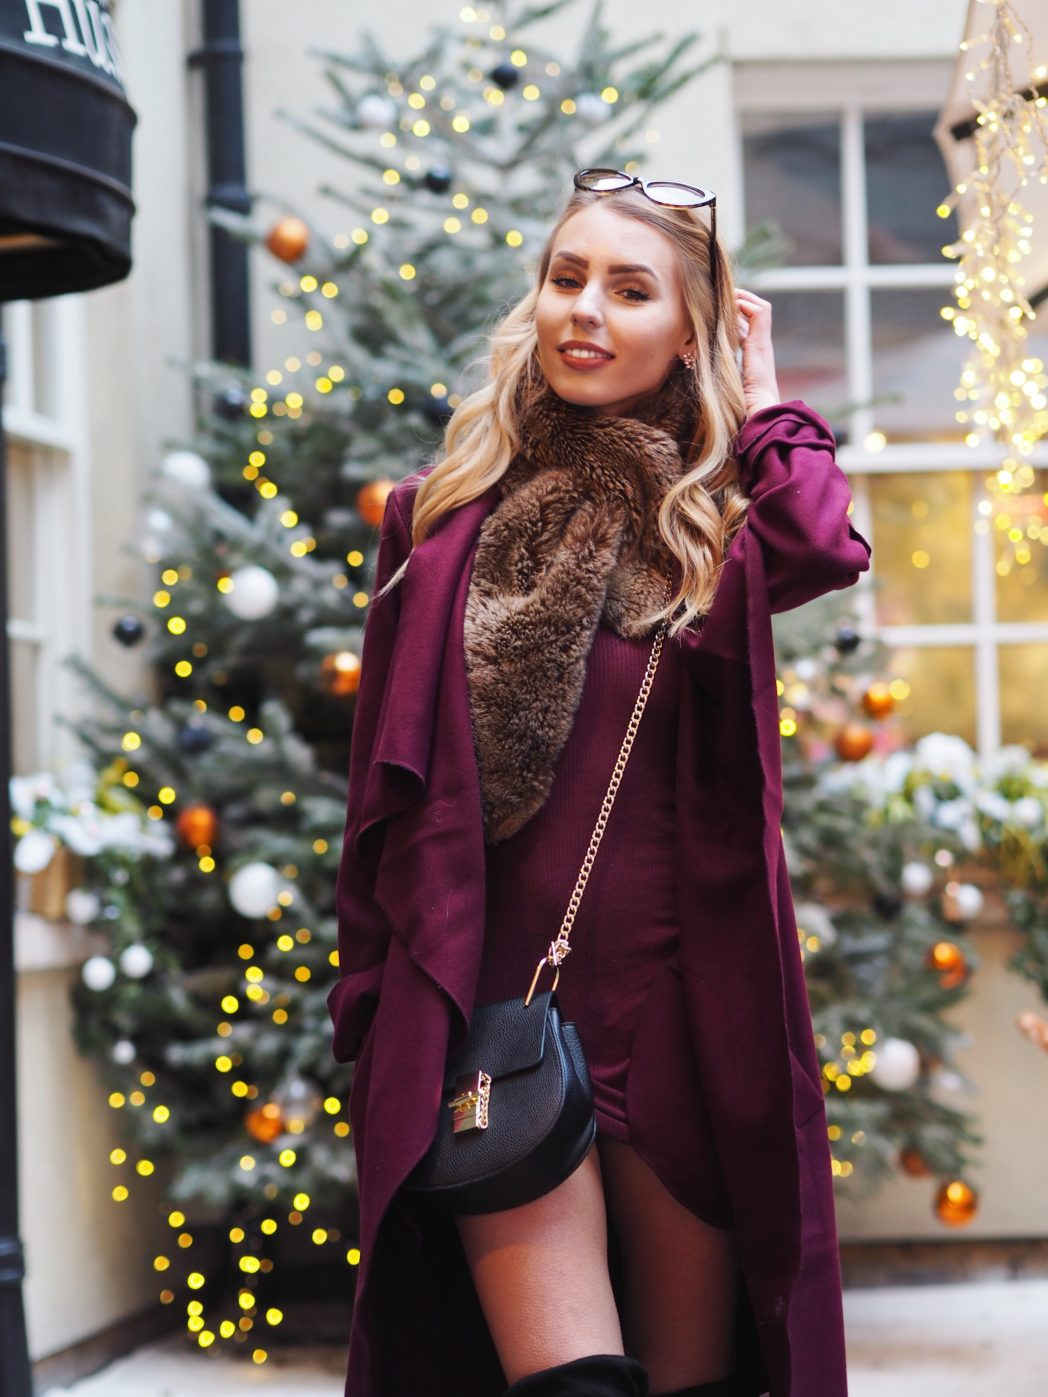 The Three Things I'm Aiming For In 2018 - How I'm Planning To SLAY 2018 | The Chic Pursuit is wearing a black Chloe Drew bag dupe with long, waterfall burgundy coat and burgundy dress, along with a faux fur scarf and black over the knee boots